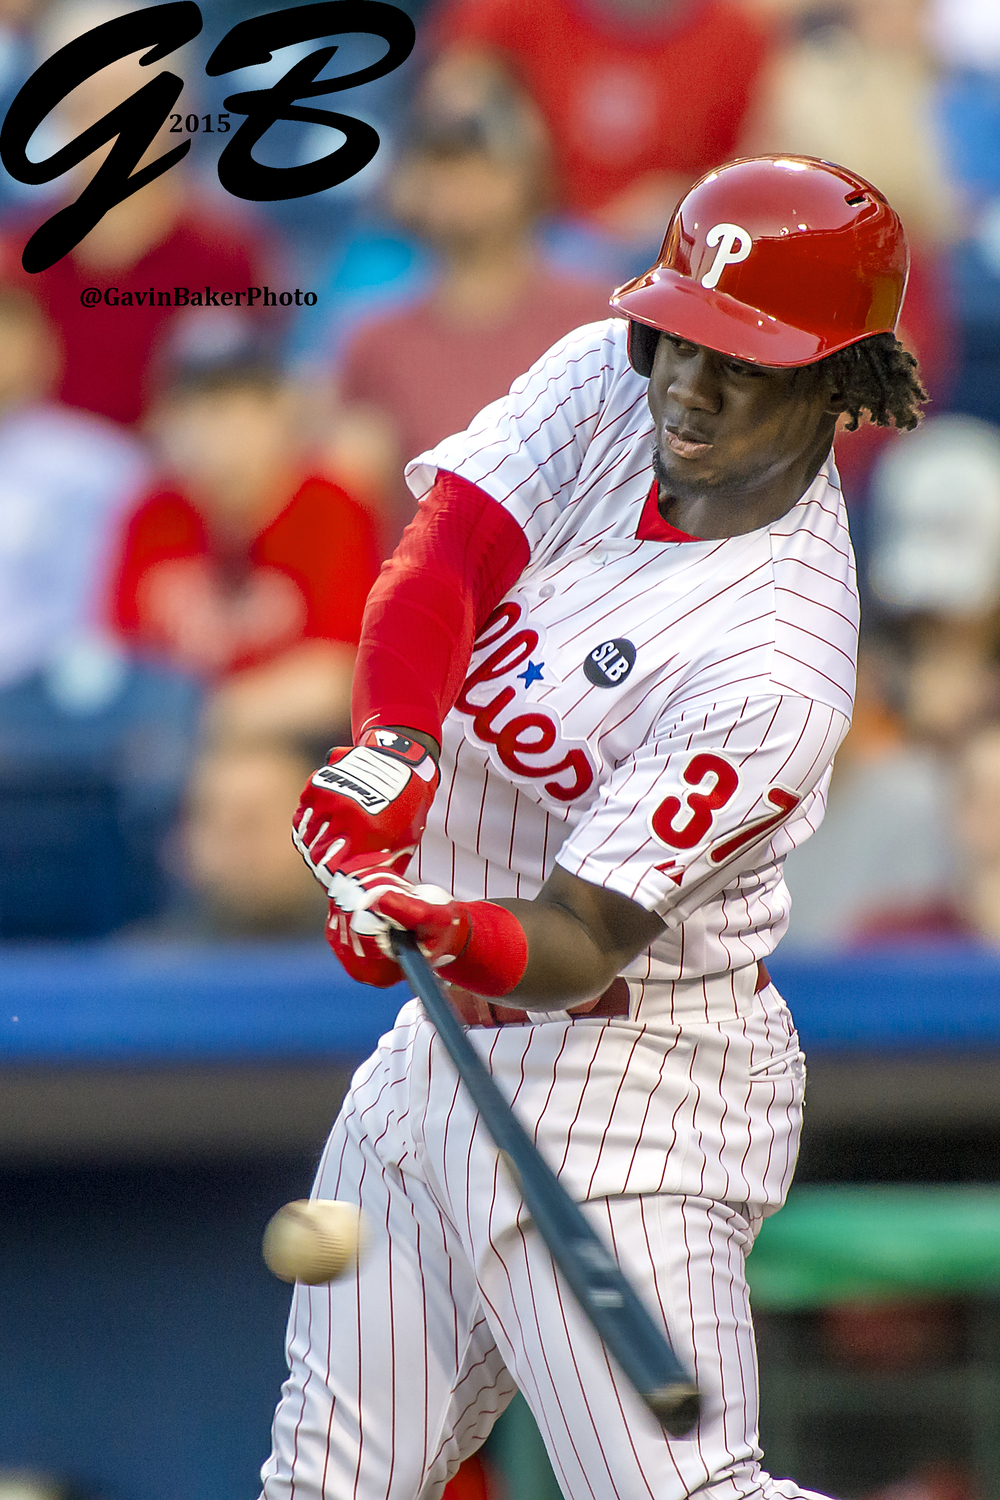 08 May 2015: Philadelphia Phillies center fielder Odubel Herrera (37) connects at the plate during the MLB game between the New York Mets and the Philadelphia Phillies played at the Citizens Bank Park in Philadelphia, PA